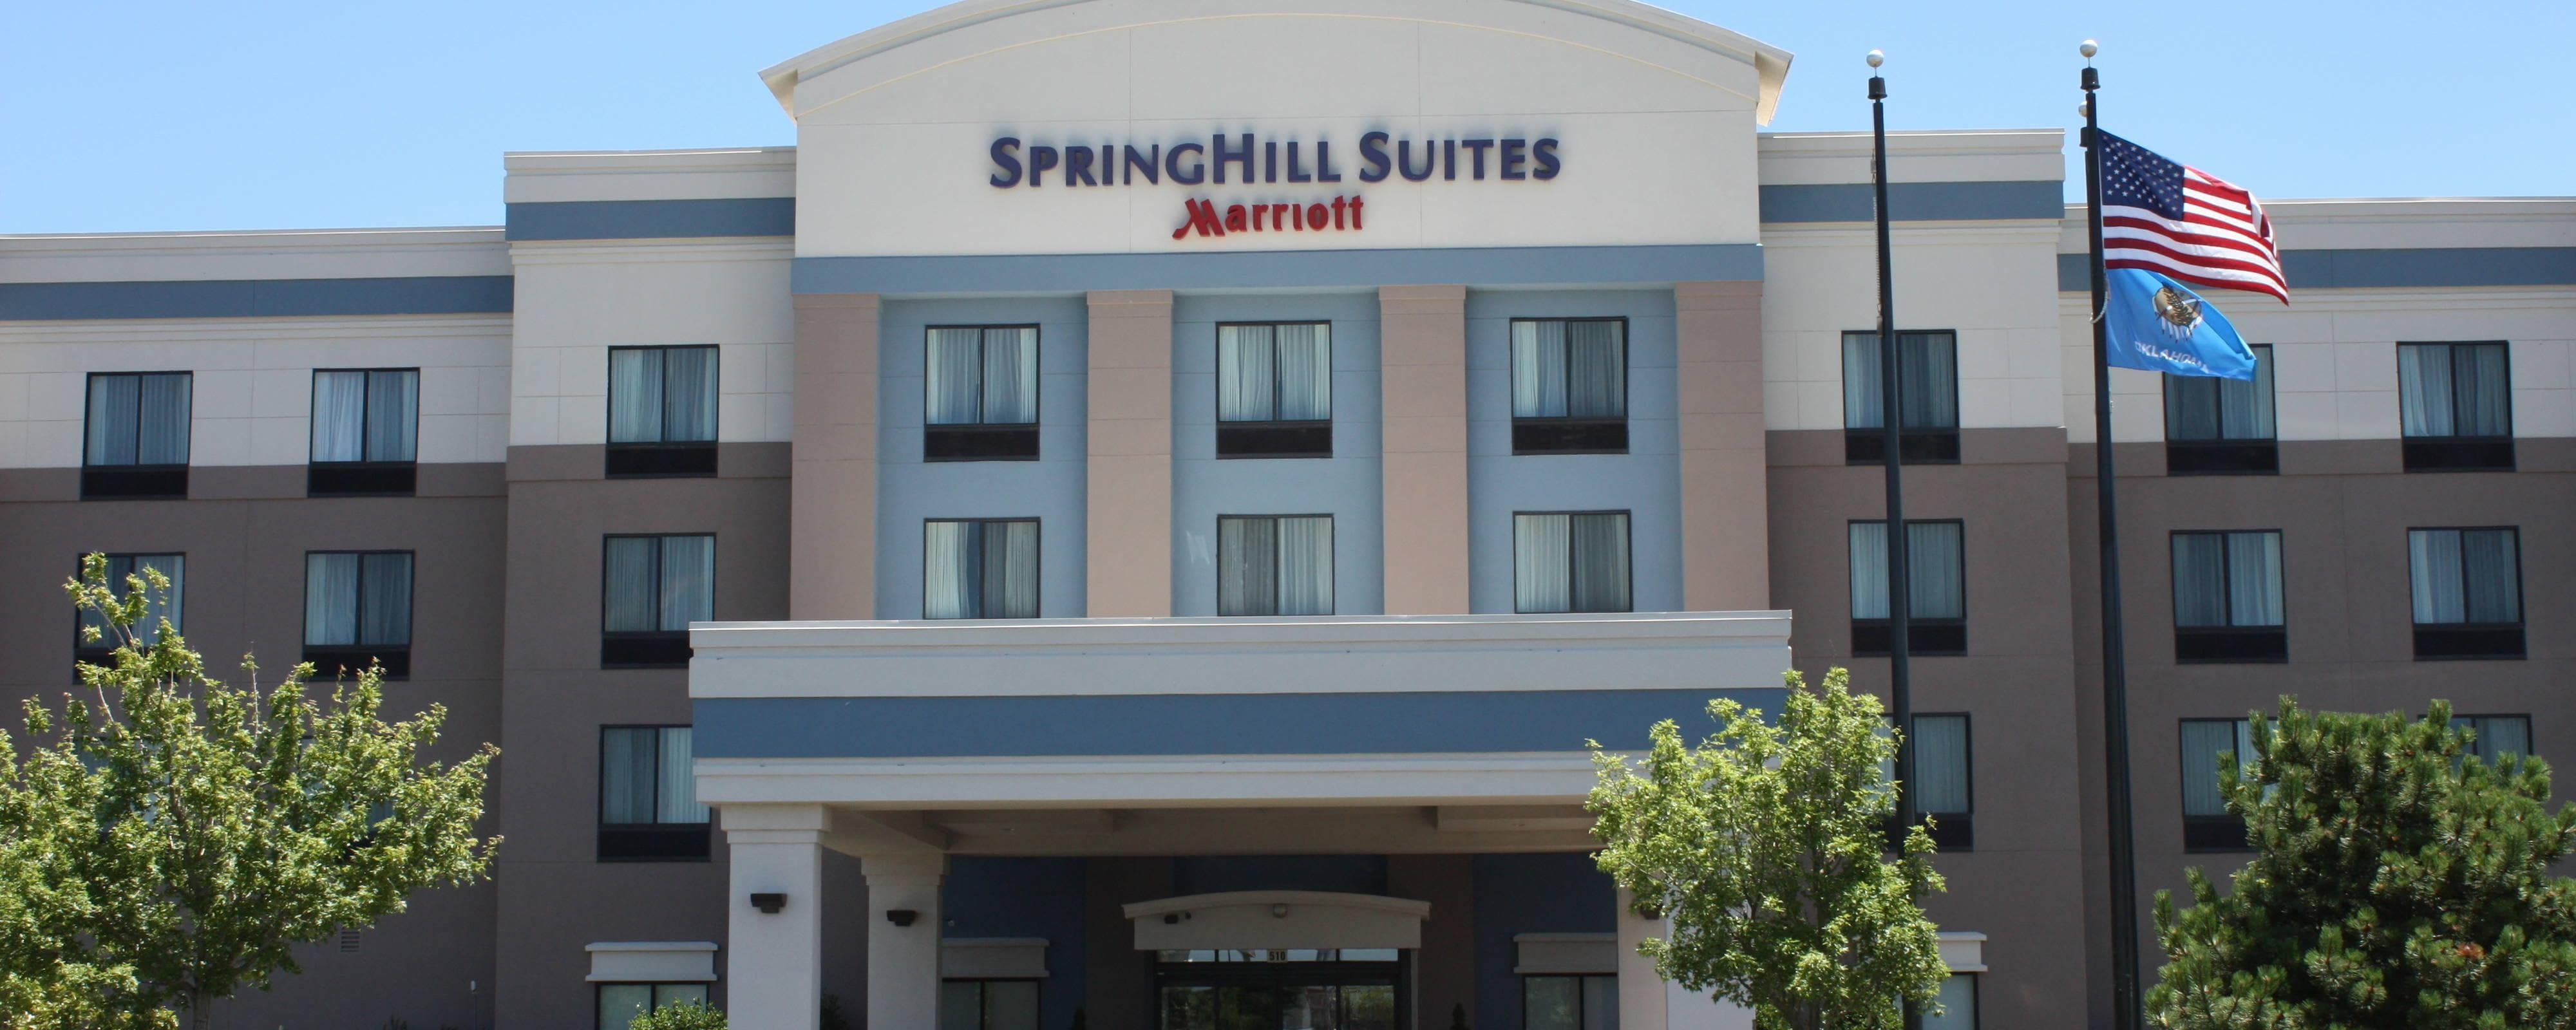 Springhill Suites New Oklahoma City Airport Oklahoma City